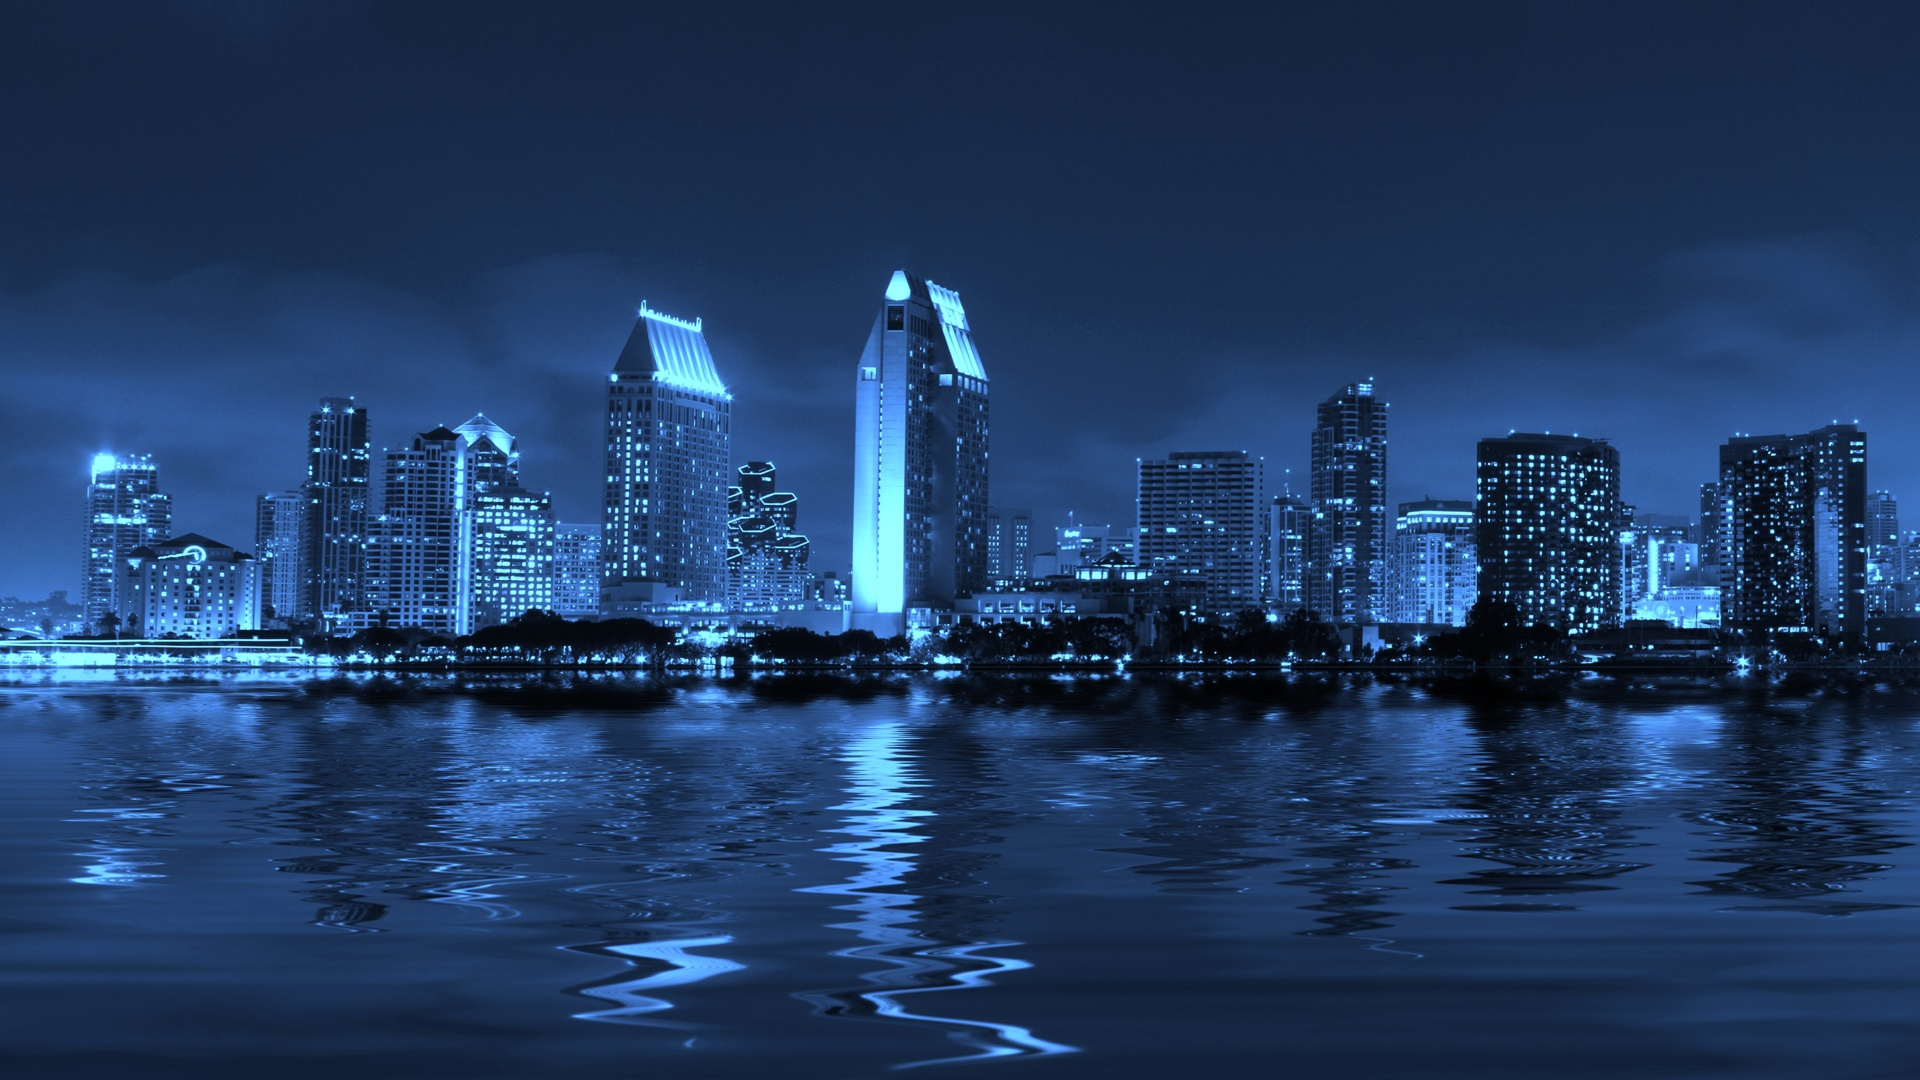 San Diego Hd Wallpapers